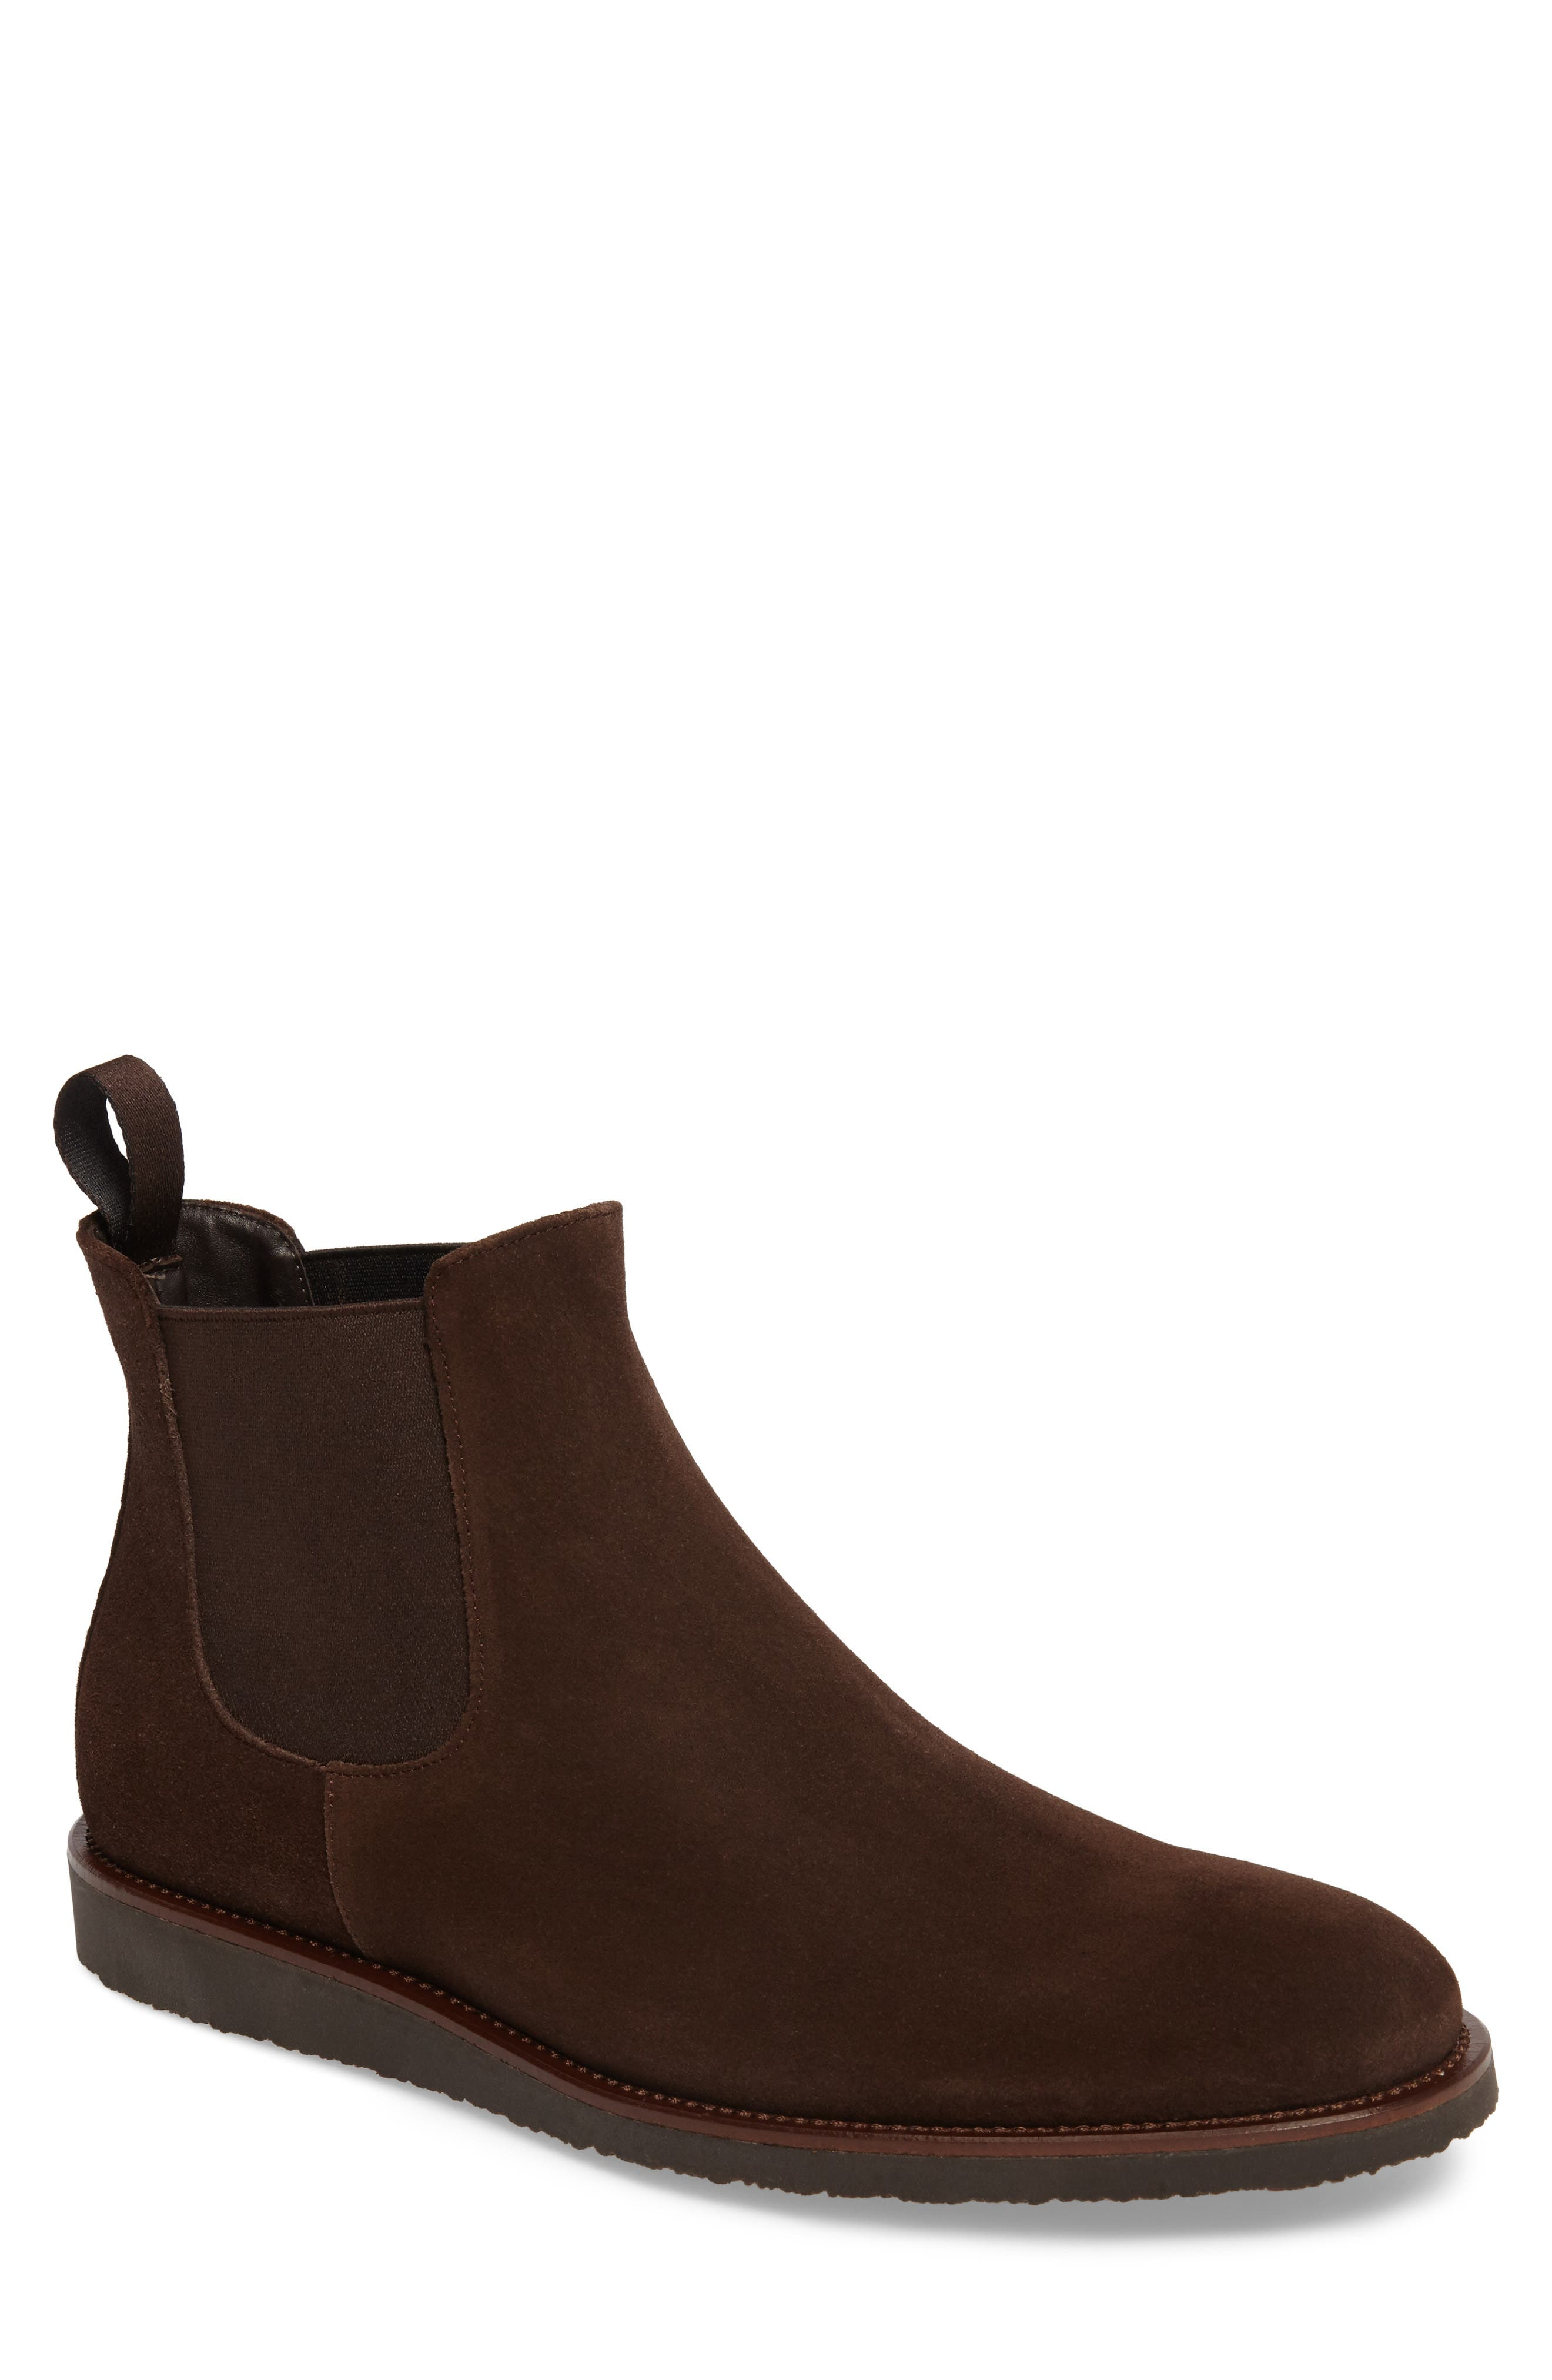 Corden Chelsea Boot,                         Main,                         color, Otterproof Moro